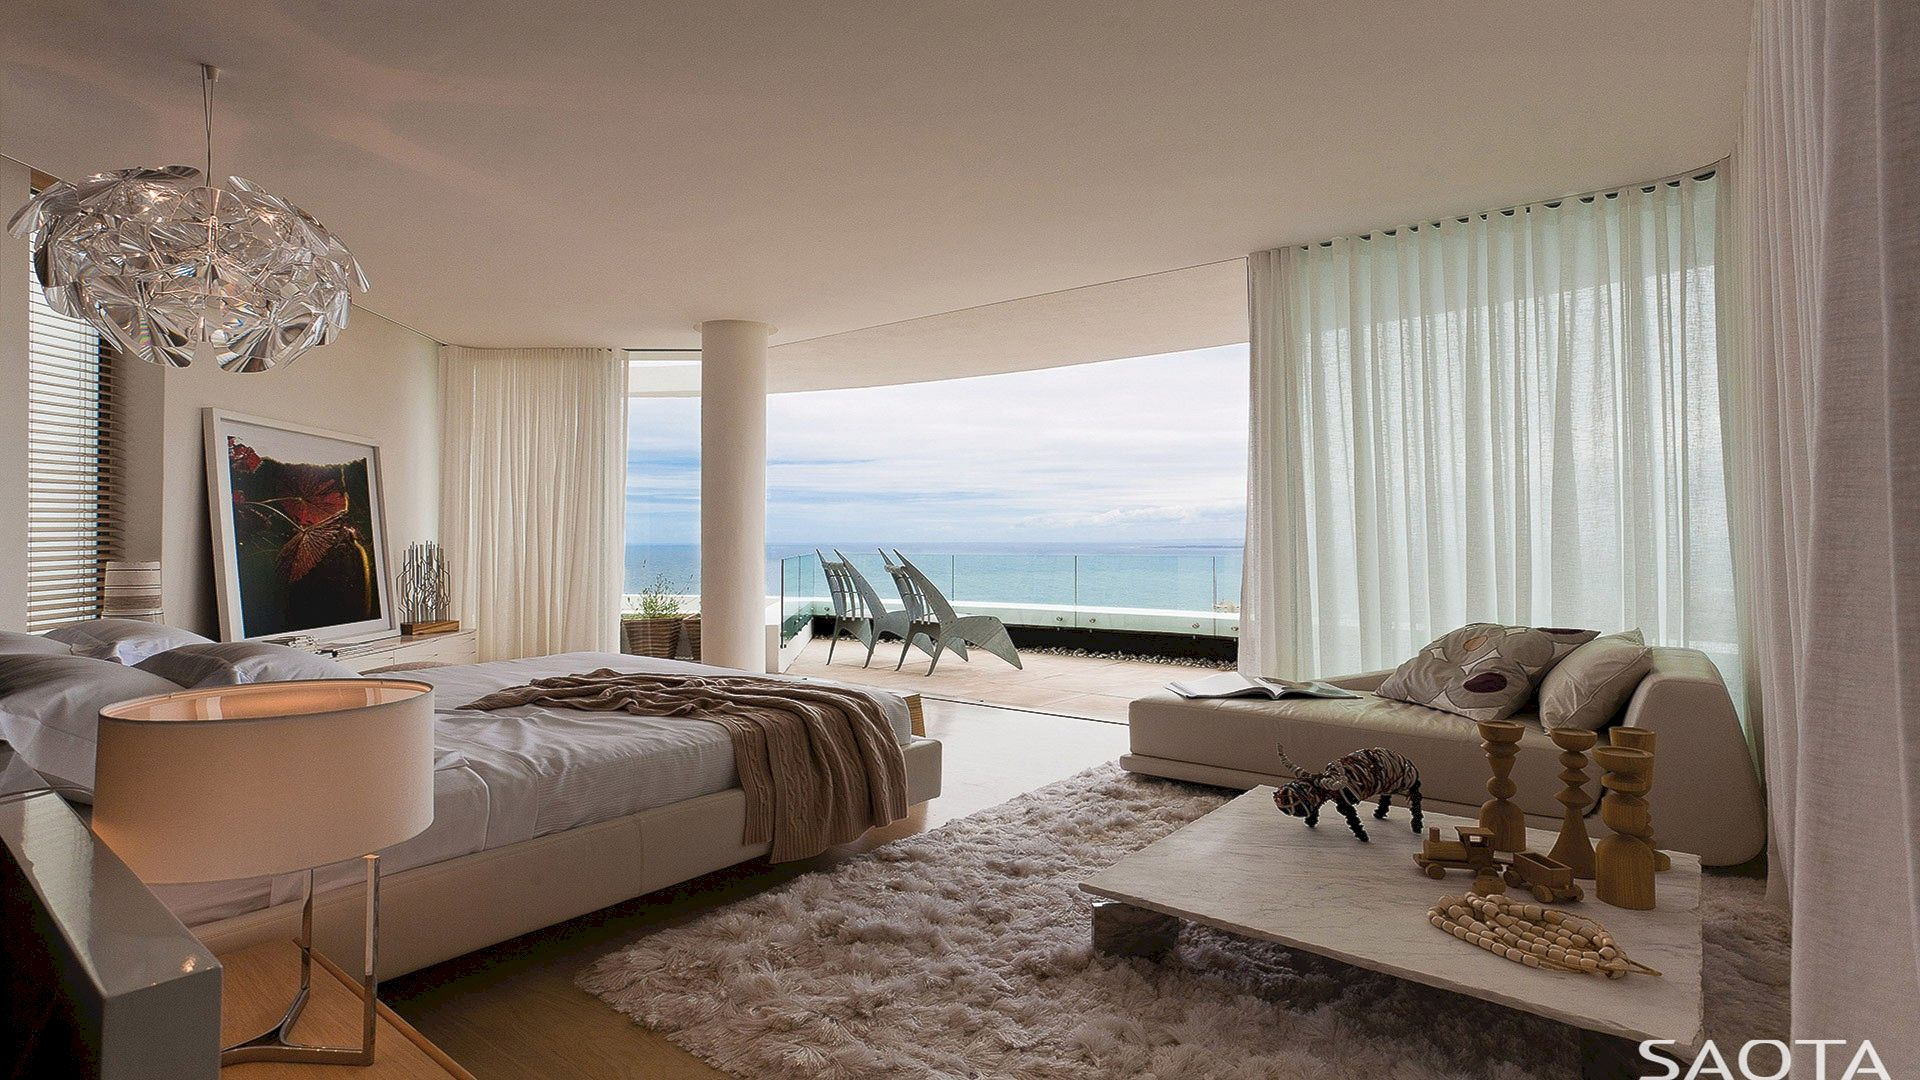 LGV 5 By SAOTA Architecture And Design 9